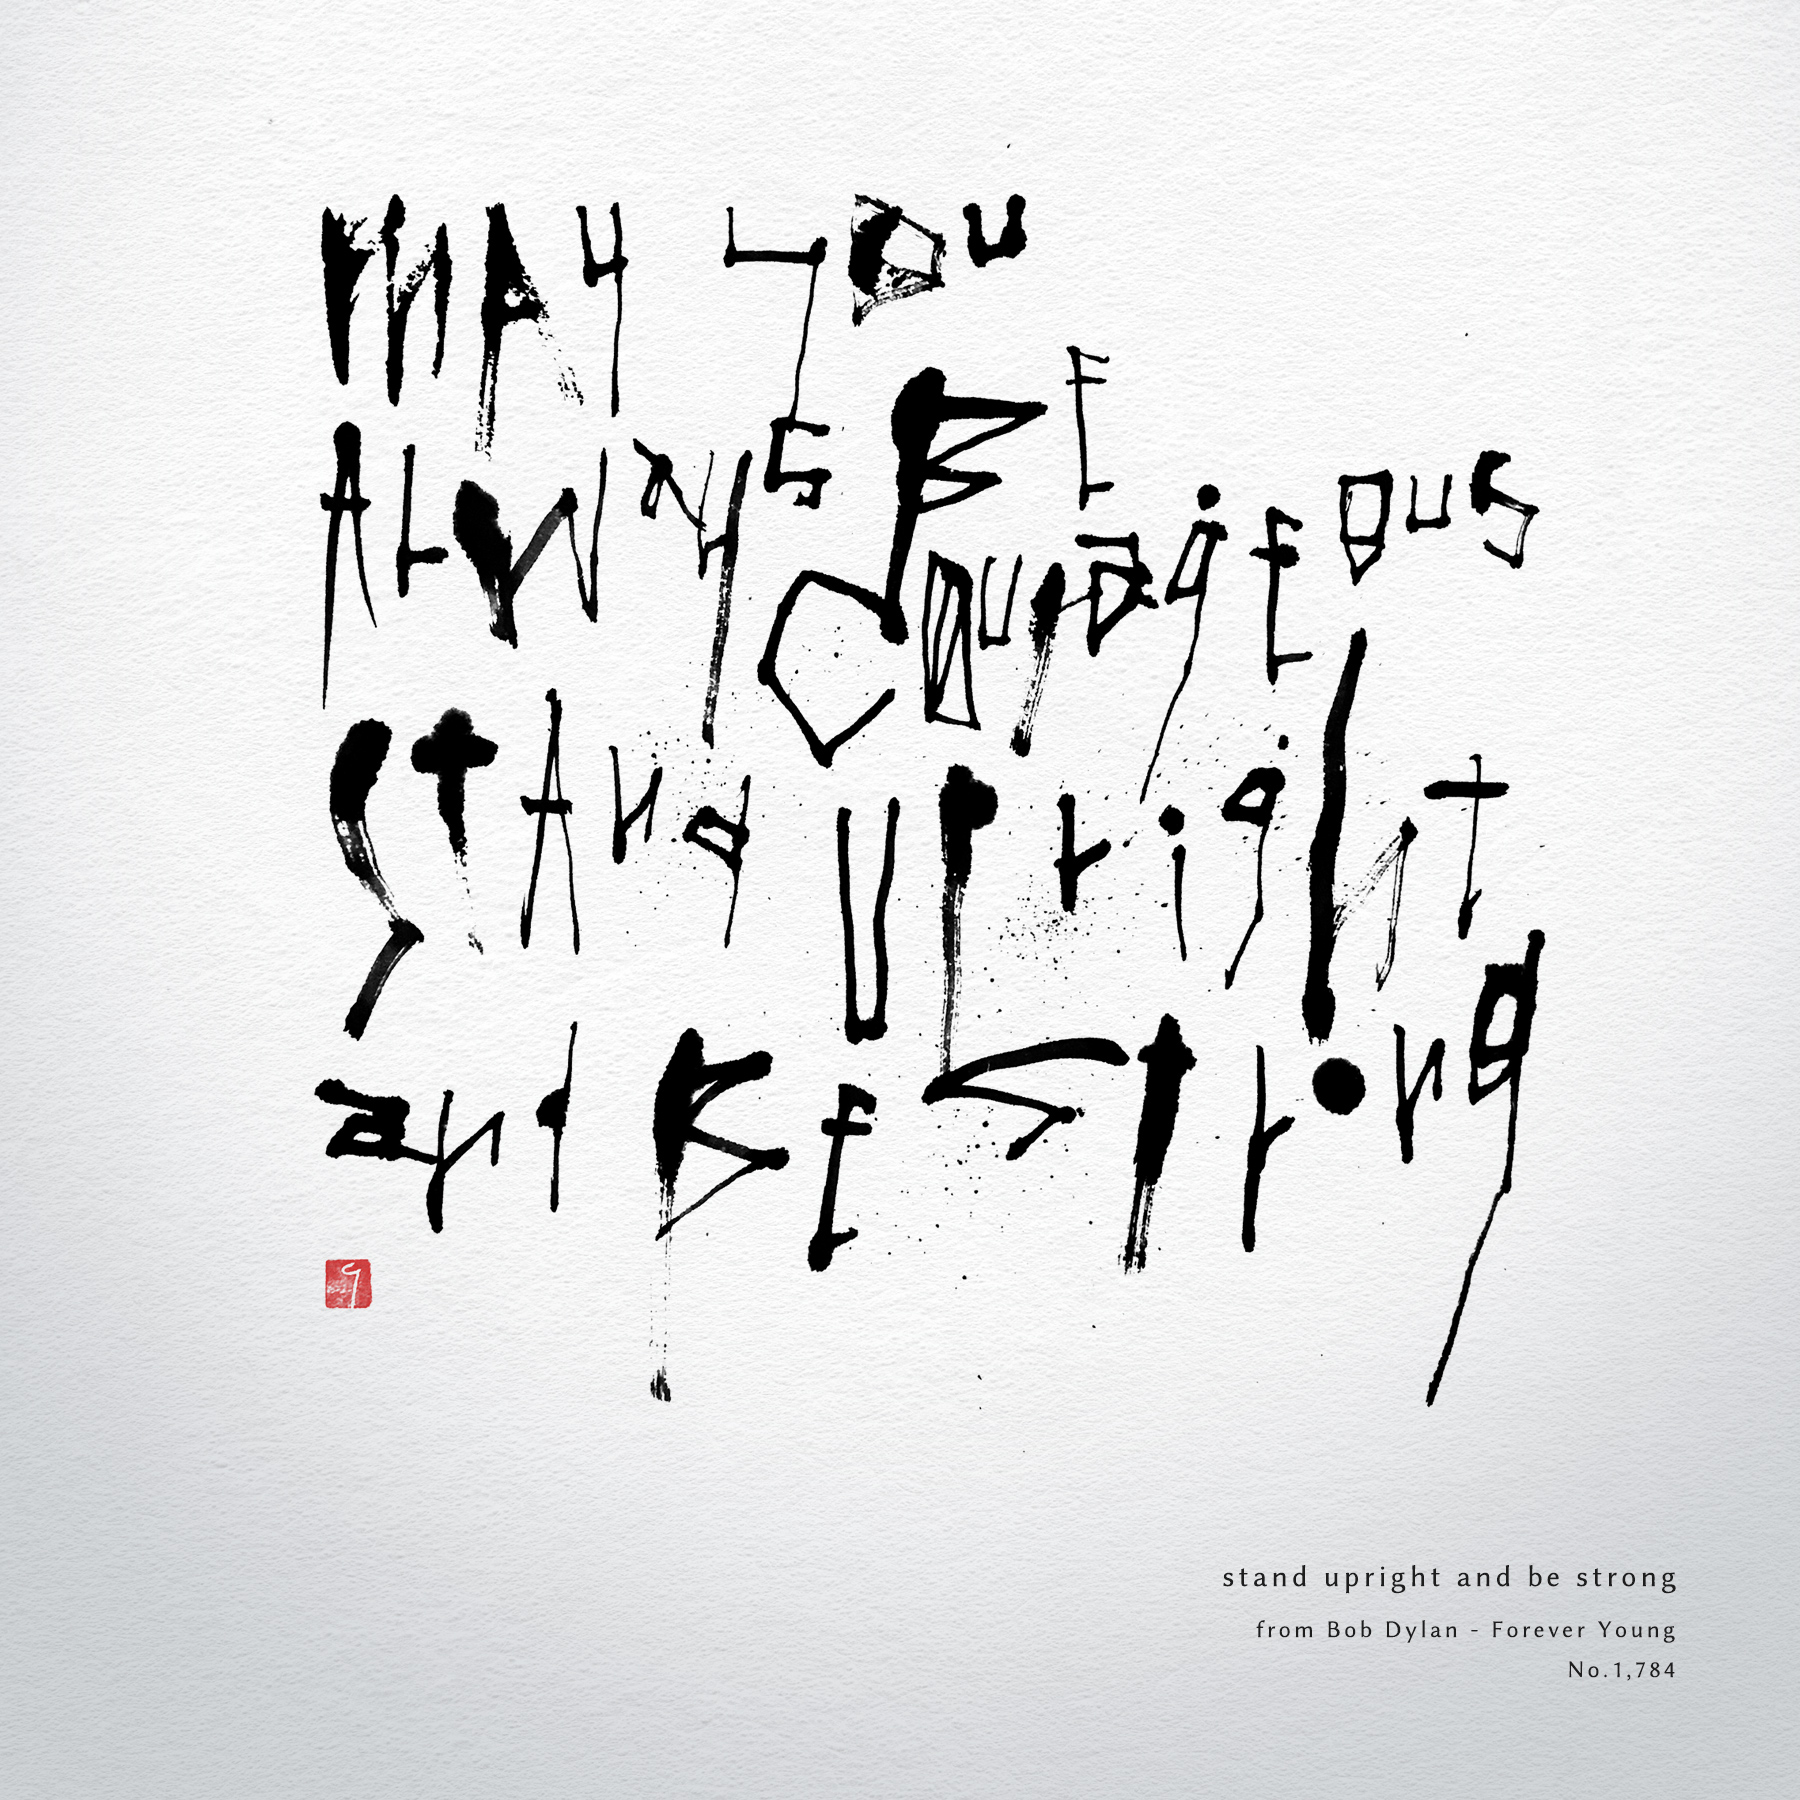 Stand uplight and be strong| Forever young 書道作品 japaneseart japanese calligraphy 書家 田川悟郎 Goroh Tagawaå